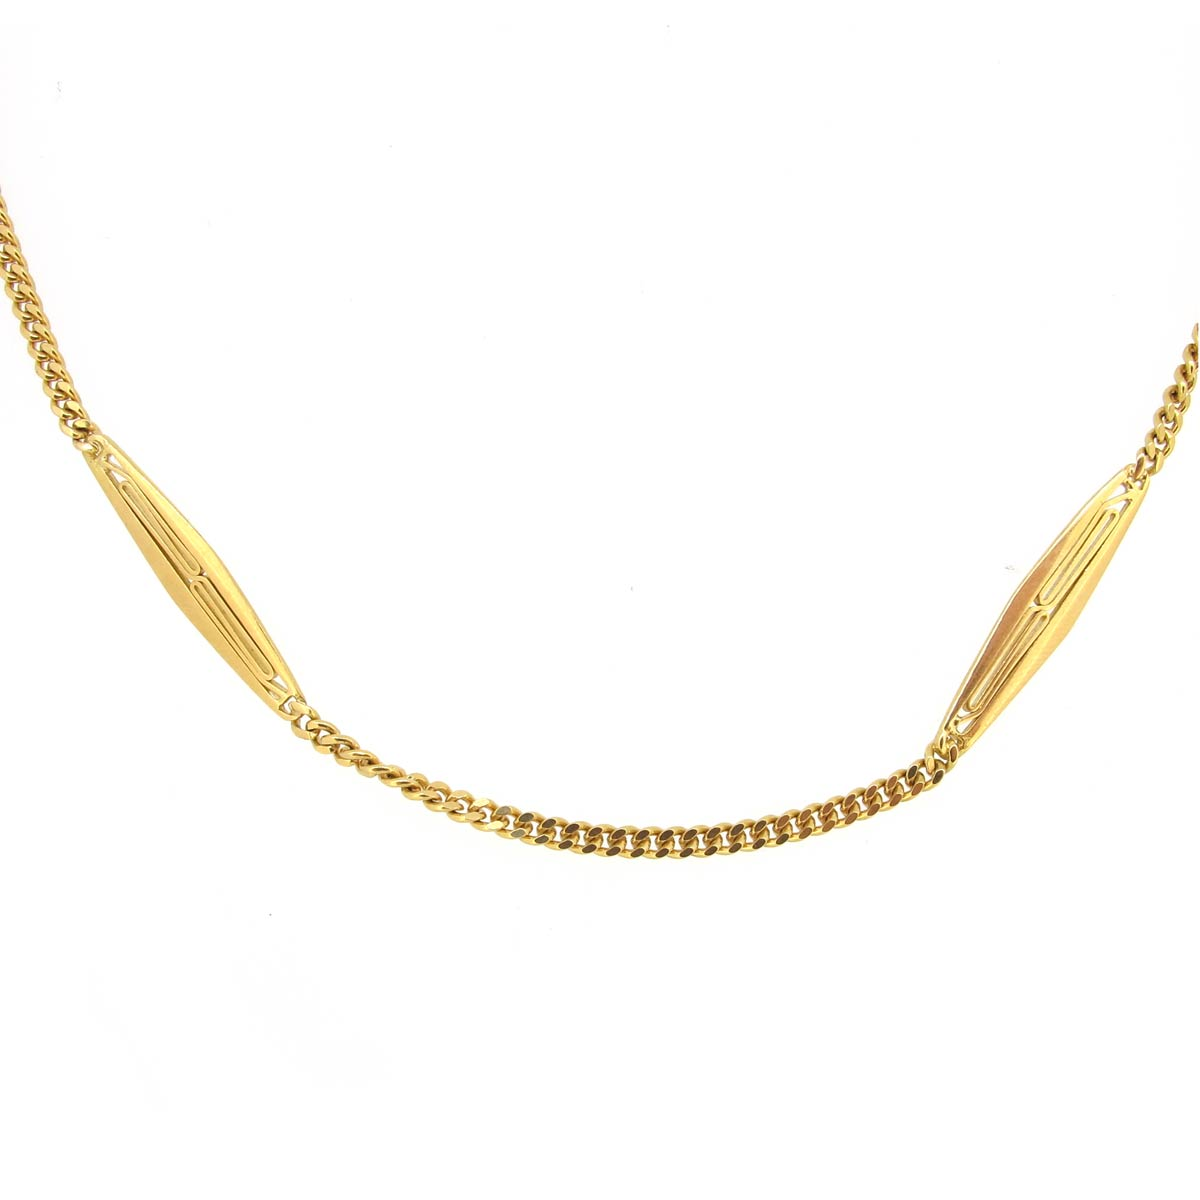 18ct Gold Long Necklace/ Guard Chain